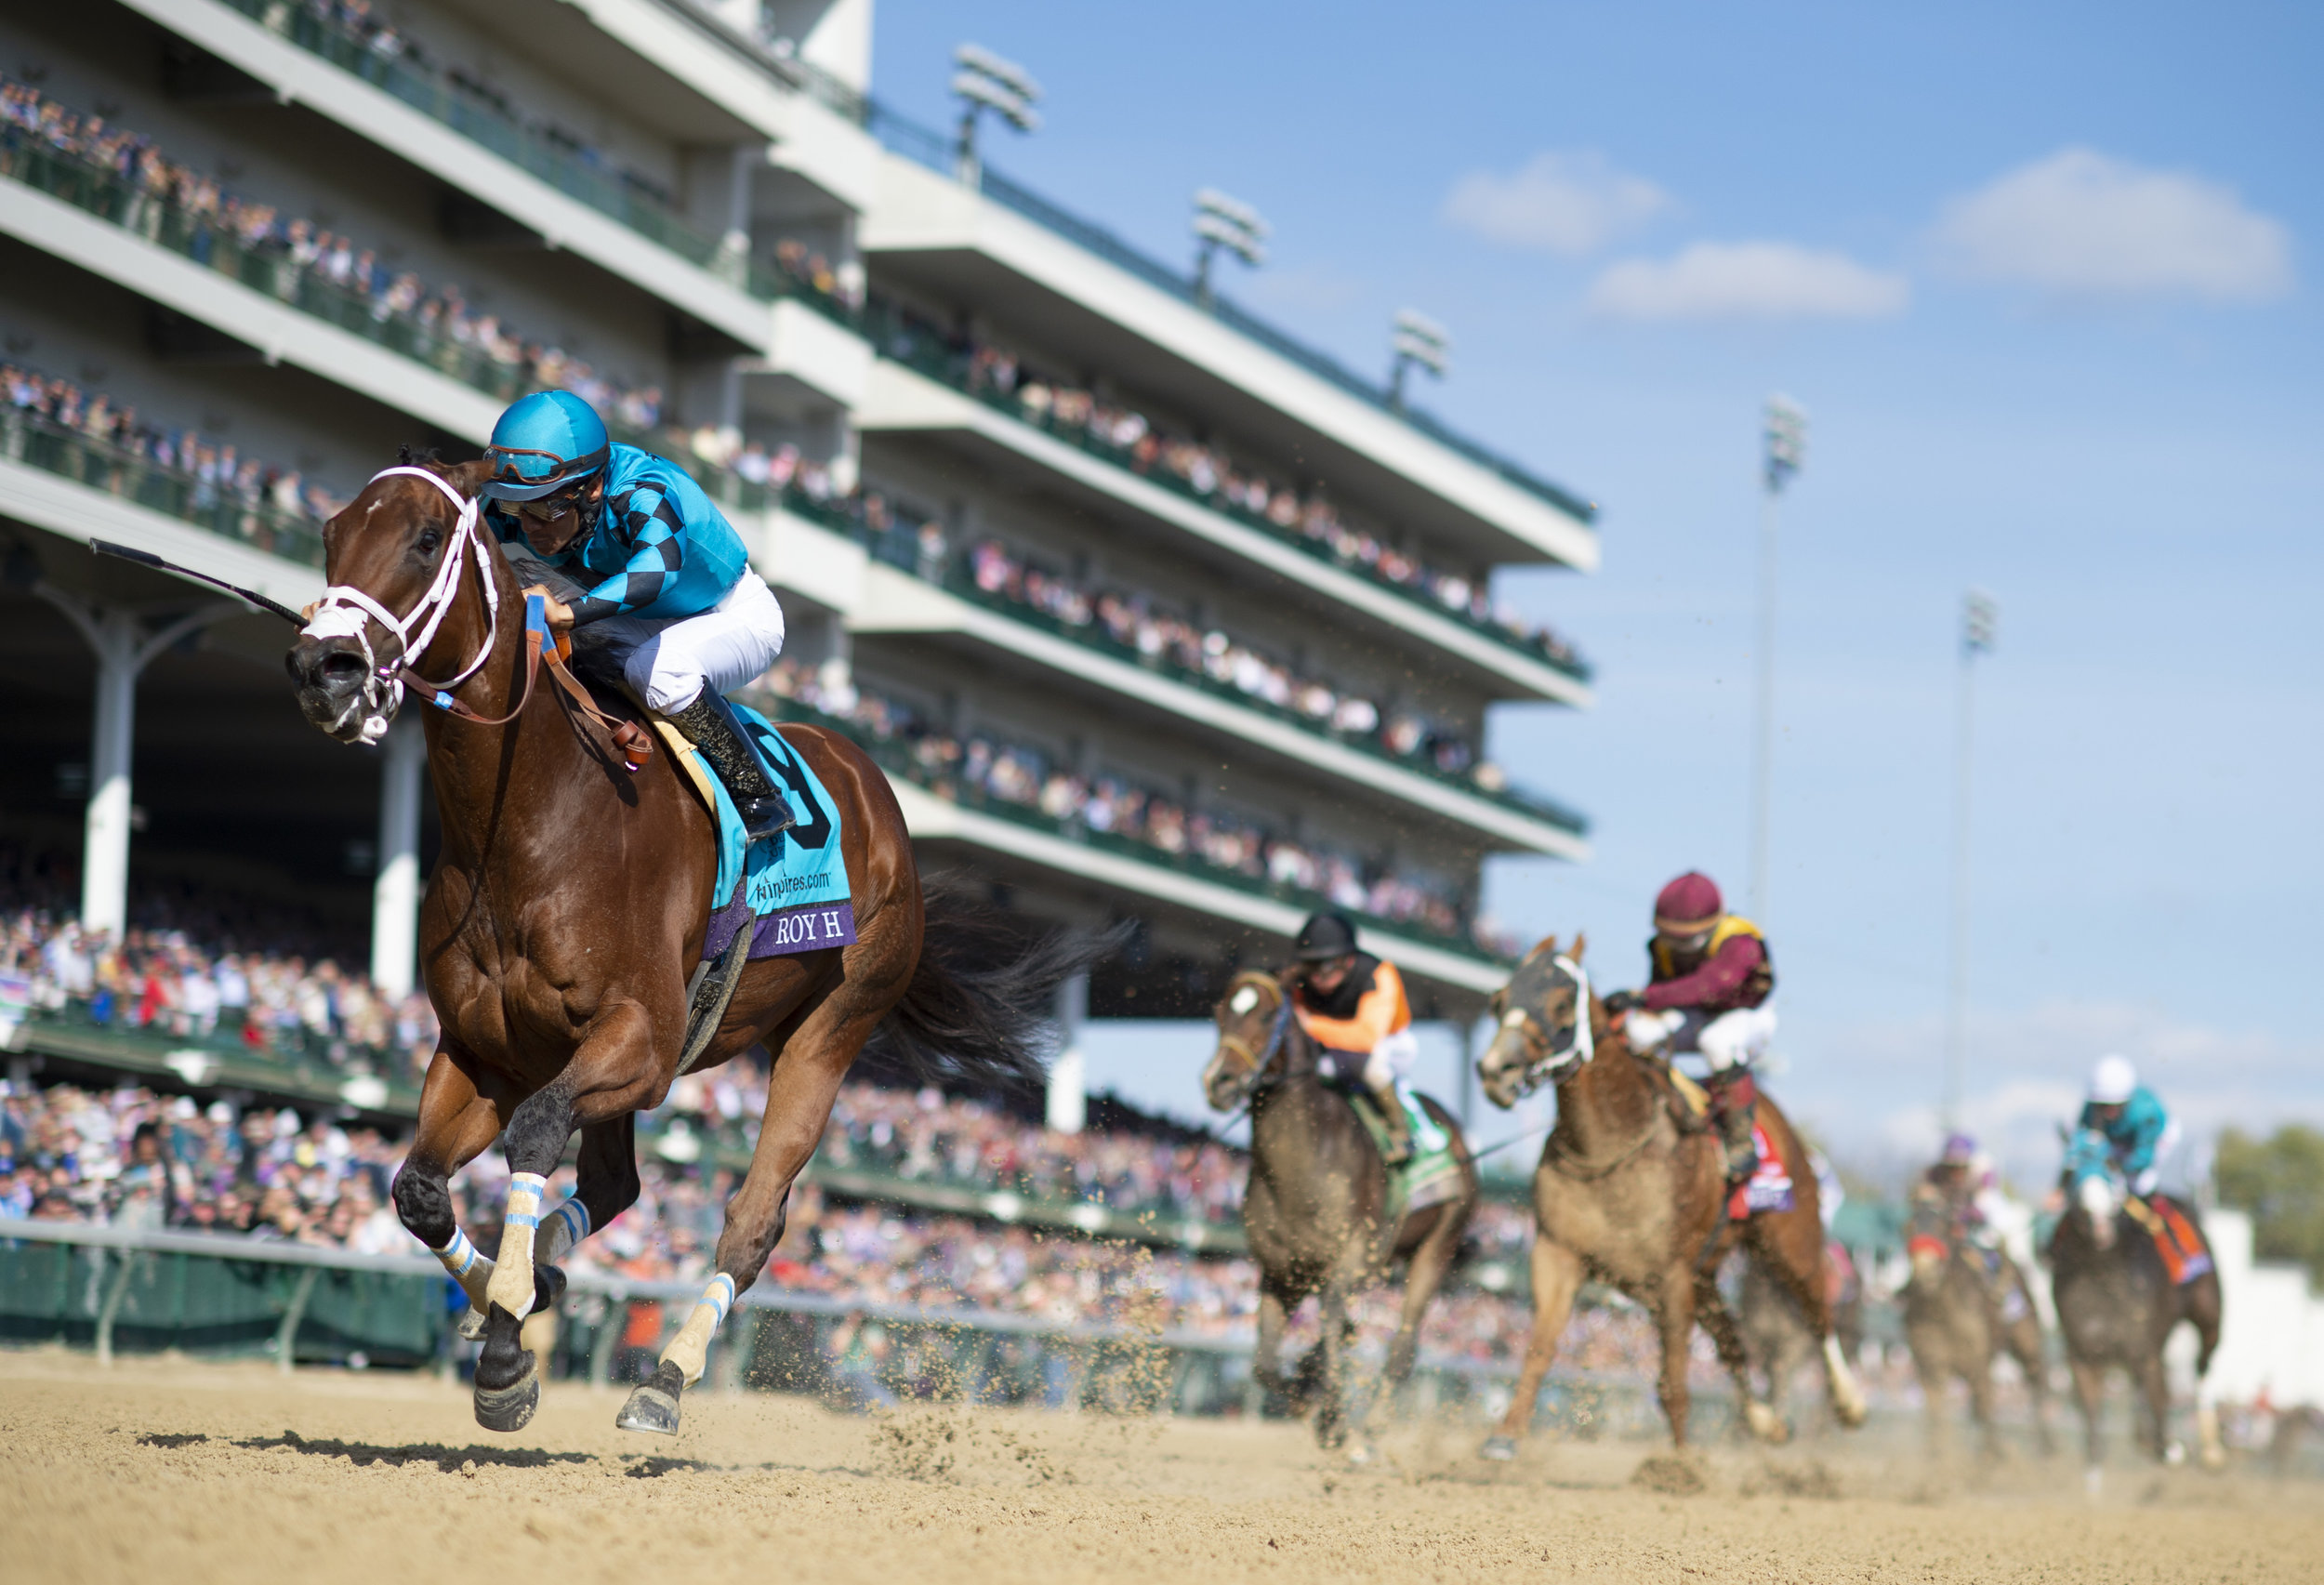 Roy H, ridden by Paco Lopez, wins Twinspires Breeders' Cup Sprint for owner Gary Hartunian